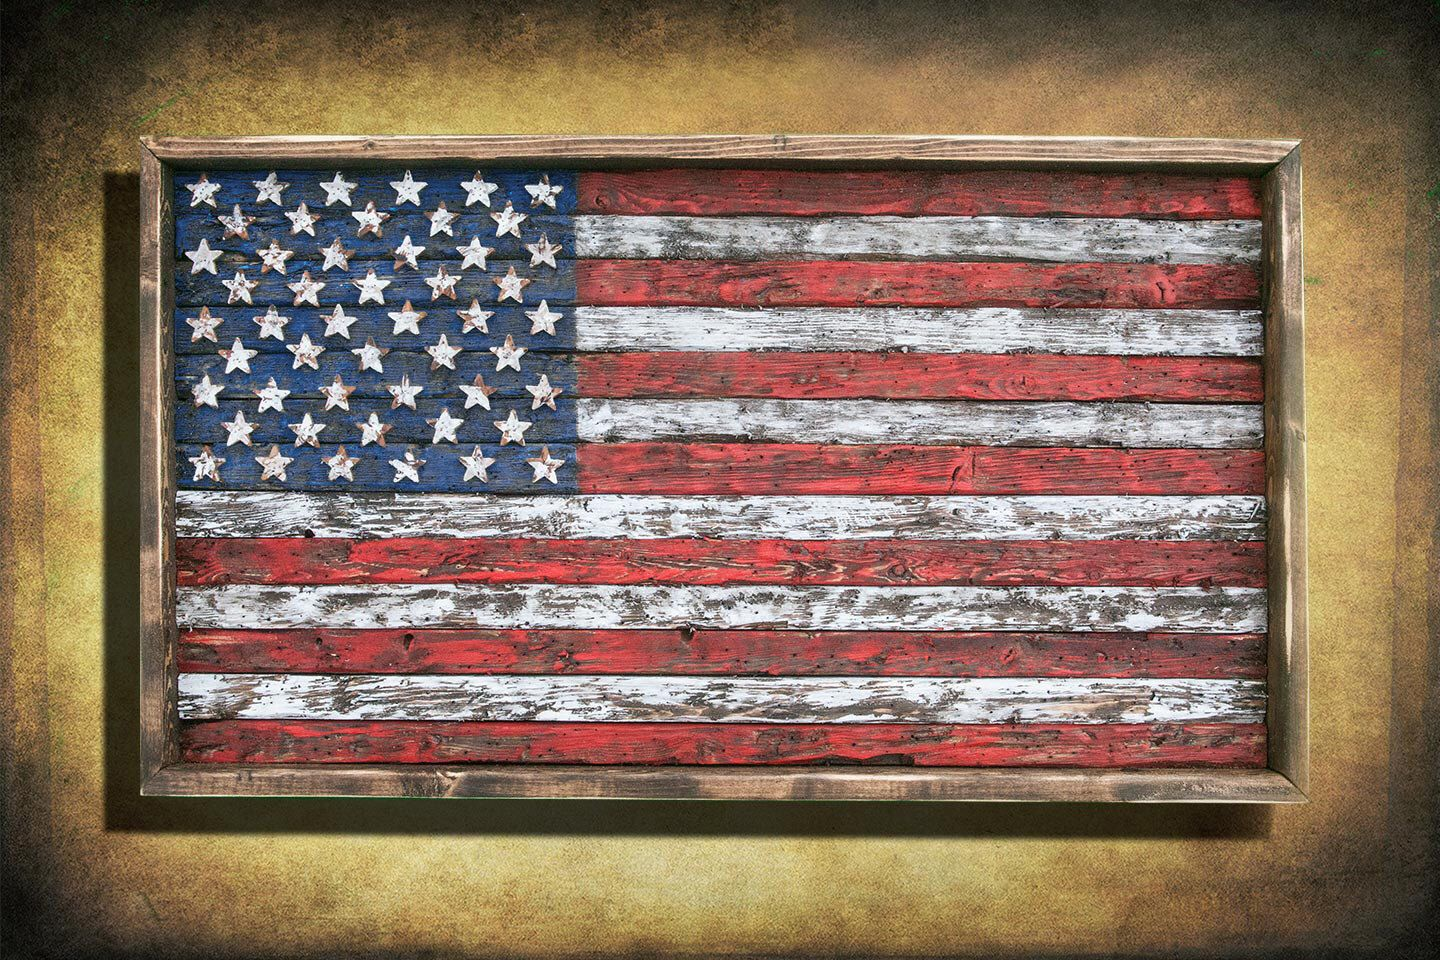 American Flag, Framed version,  Weathered Wood, One of a kind, Wooden, vintage, distressed, red, blue, white patriotic, art, USA, home decor by ChrisKnightCreations on Etsy https://www.etsy.com/listing/223950102/american-flag-framed-version-weathered